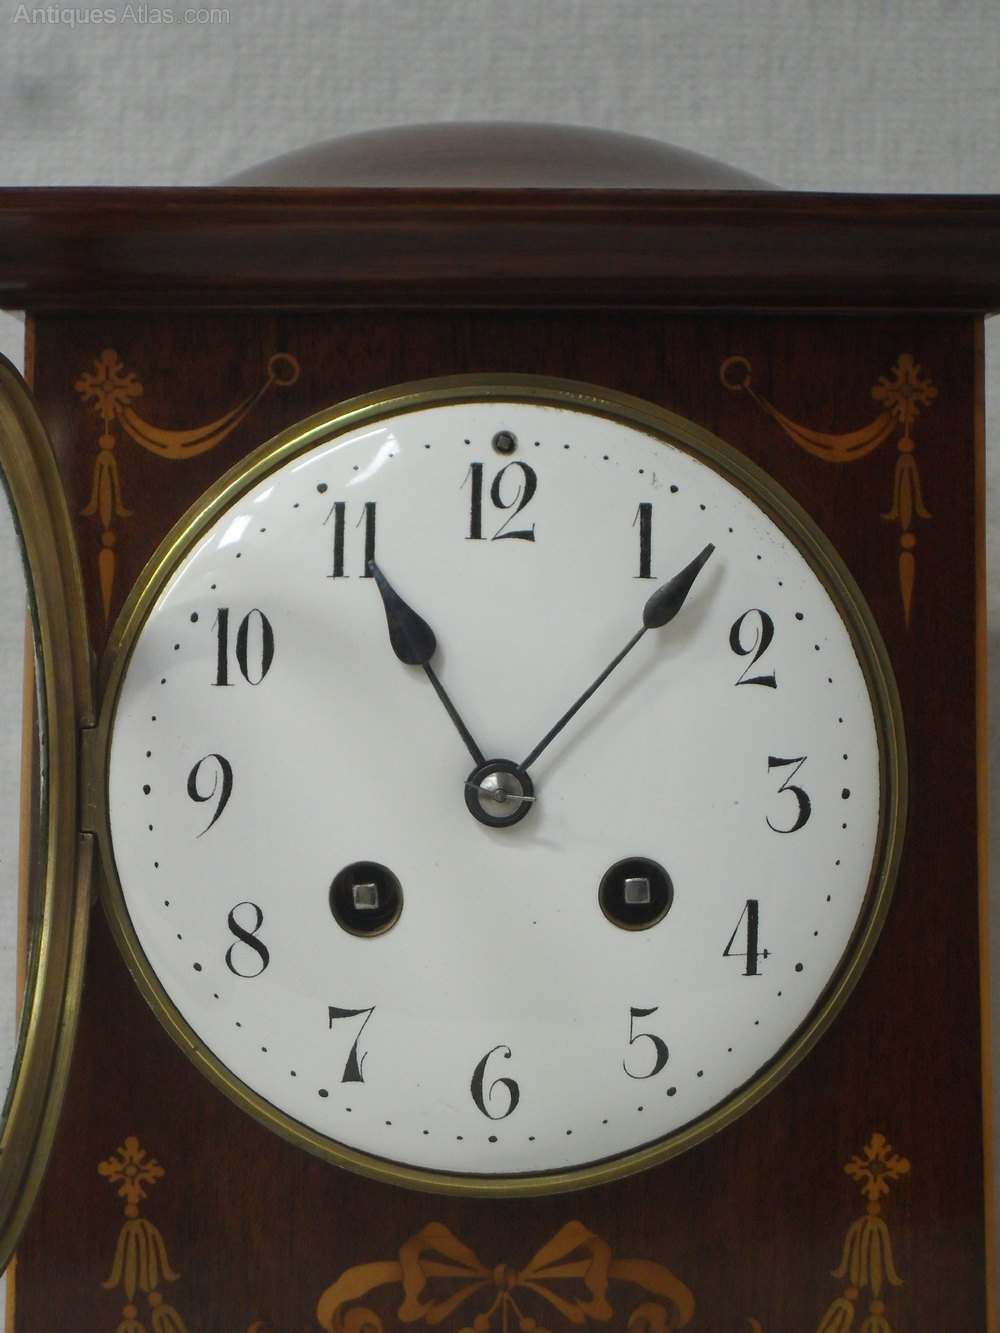 Antiques Atlas - Edwardian Mantel Clock